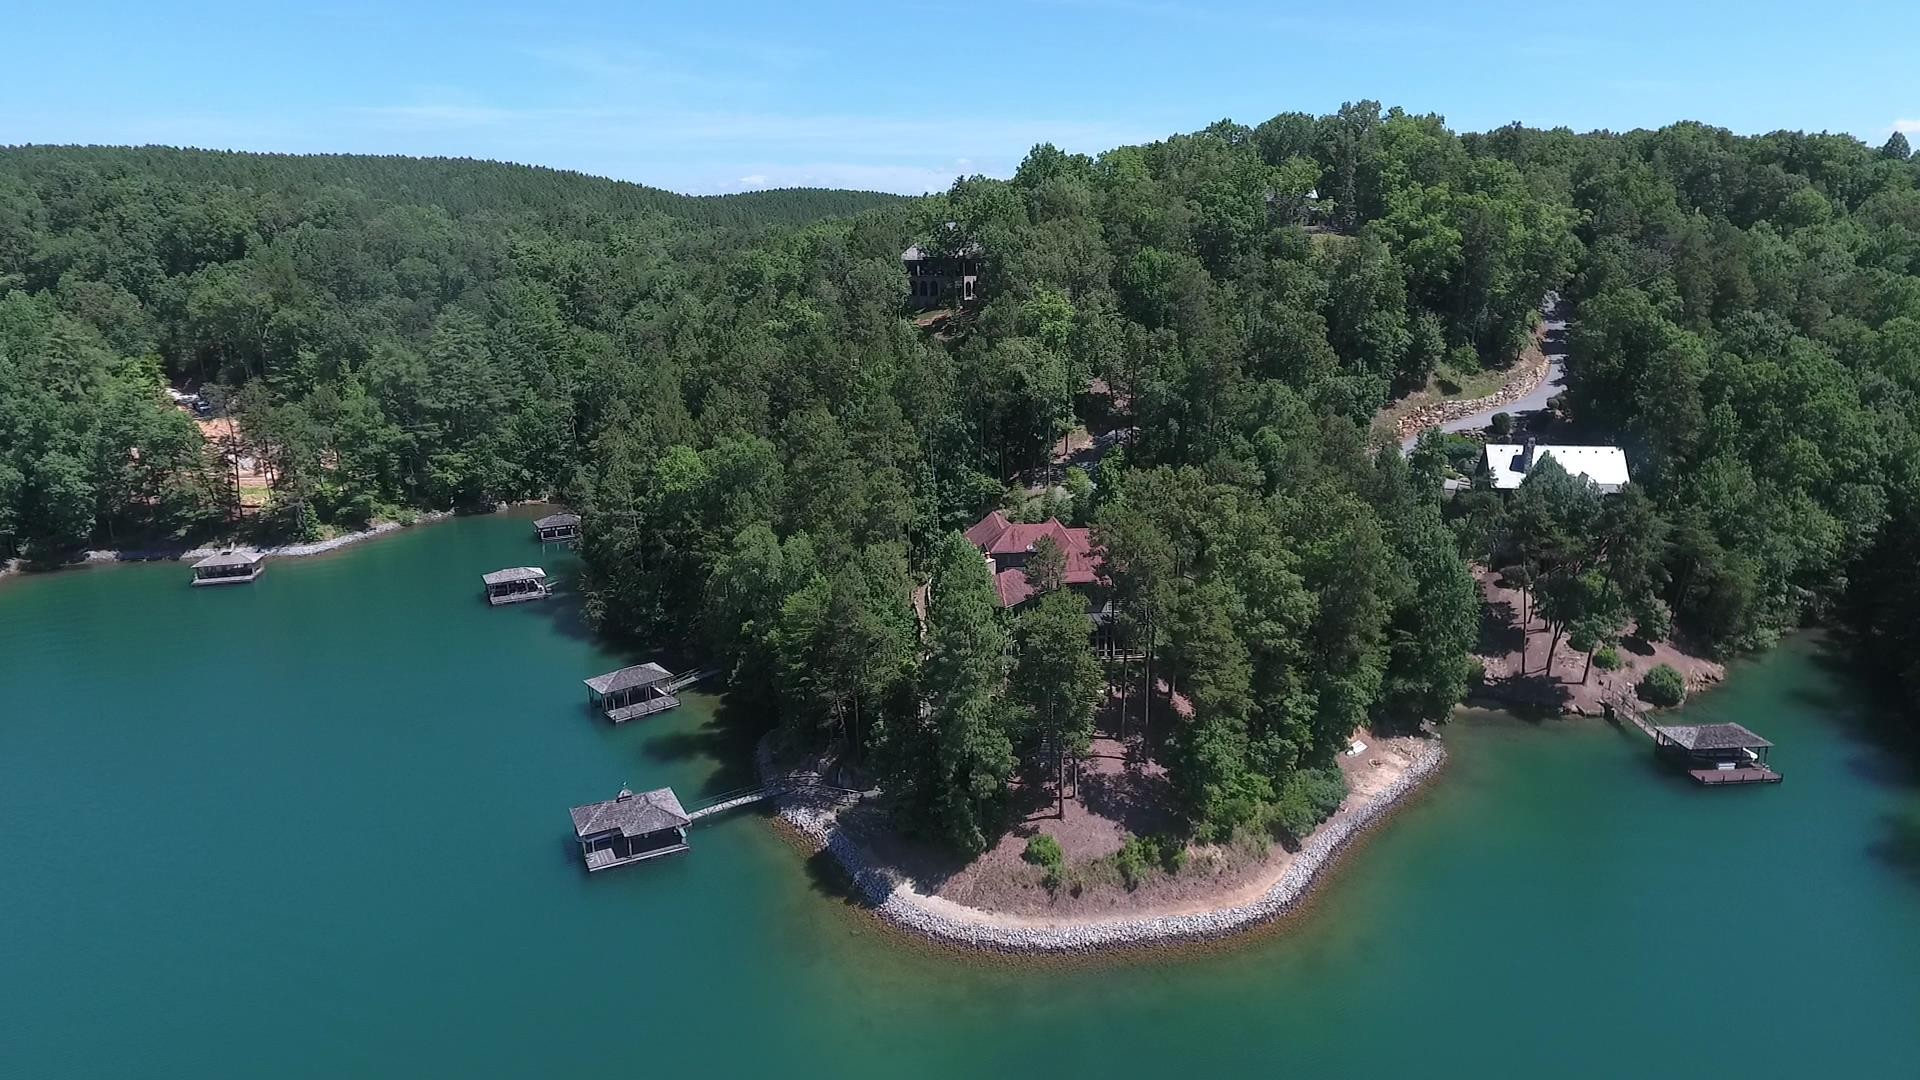 Villa per Vendita alle ore Expansive Views from this Waterfront Home by Keith Summerour 136 S. Falls Road The Reserve At Lake Keowee, Sunset, Carolina Del Sud, 29685 Stati Uniti